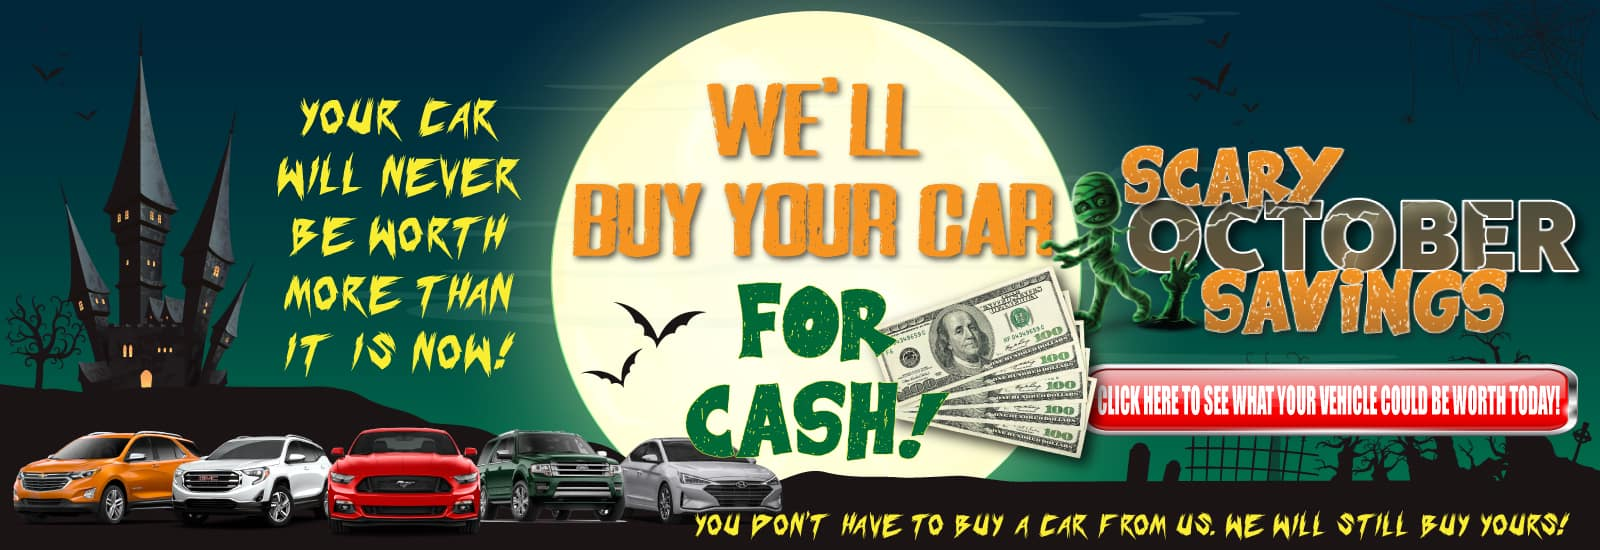 We-Will-Buy-Your-Car-Web-Banner-1600×550.jpg Oct